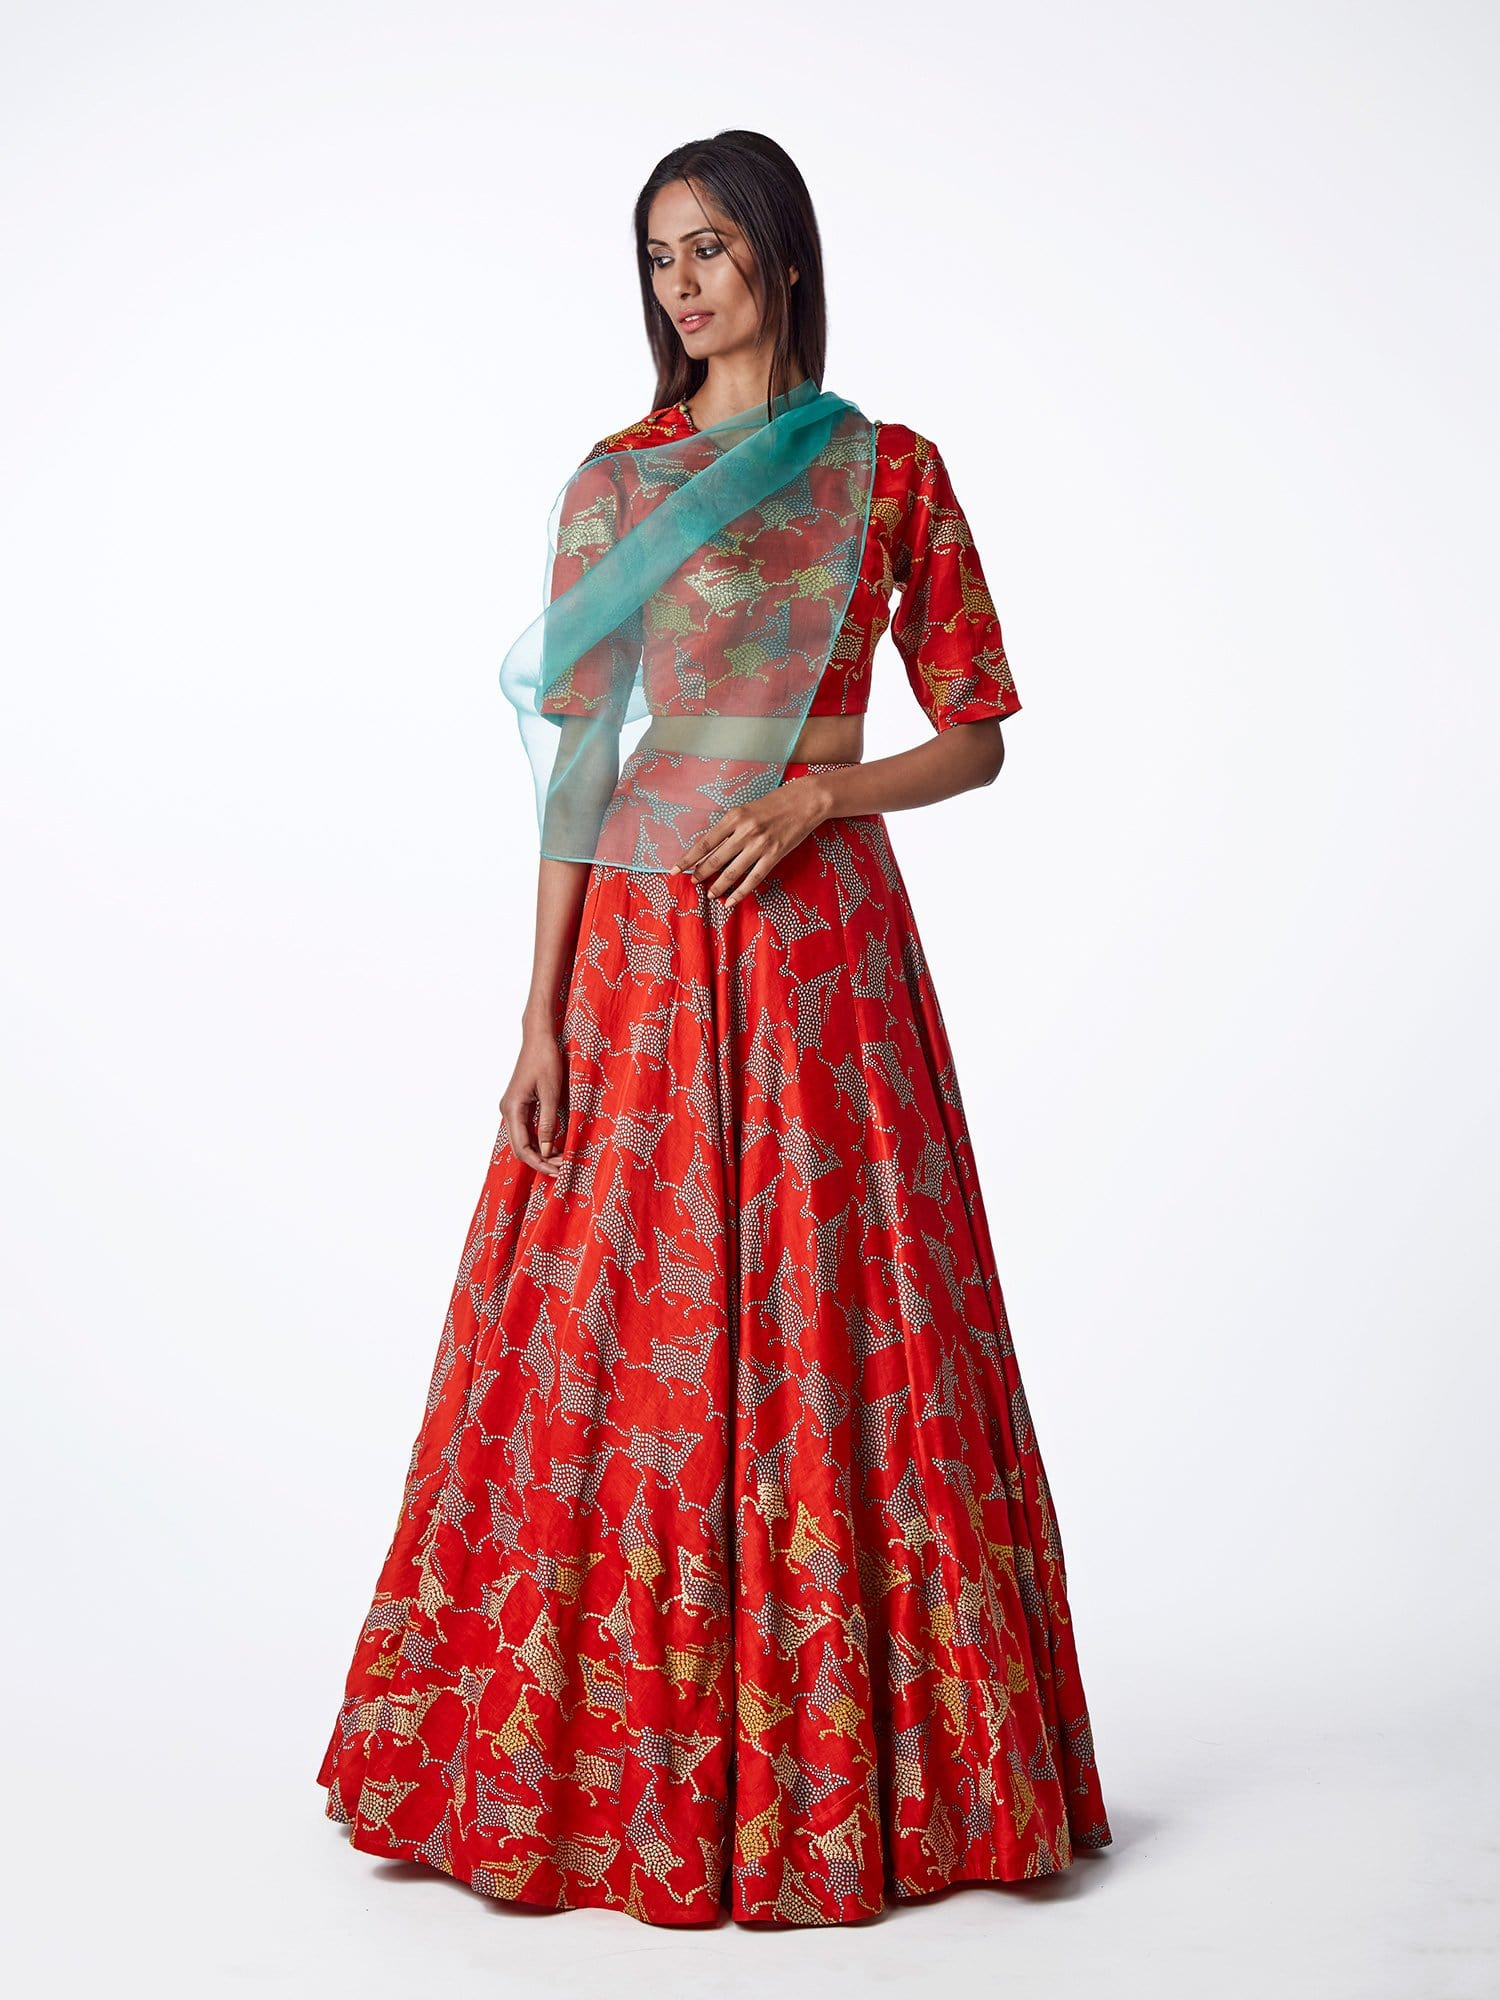 red, embroidered, printed, silk, satin, lehenga, bridal, indianwedding, lehenga choli, blouse, swati vijaivargie